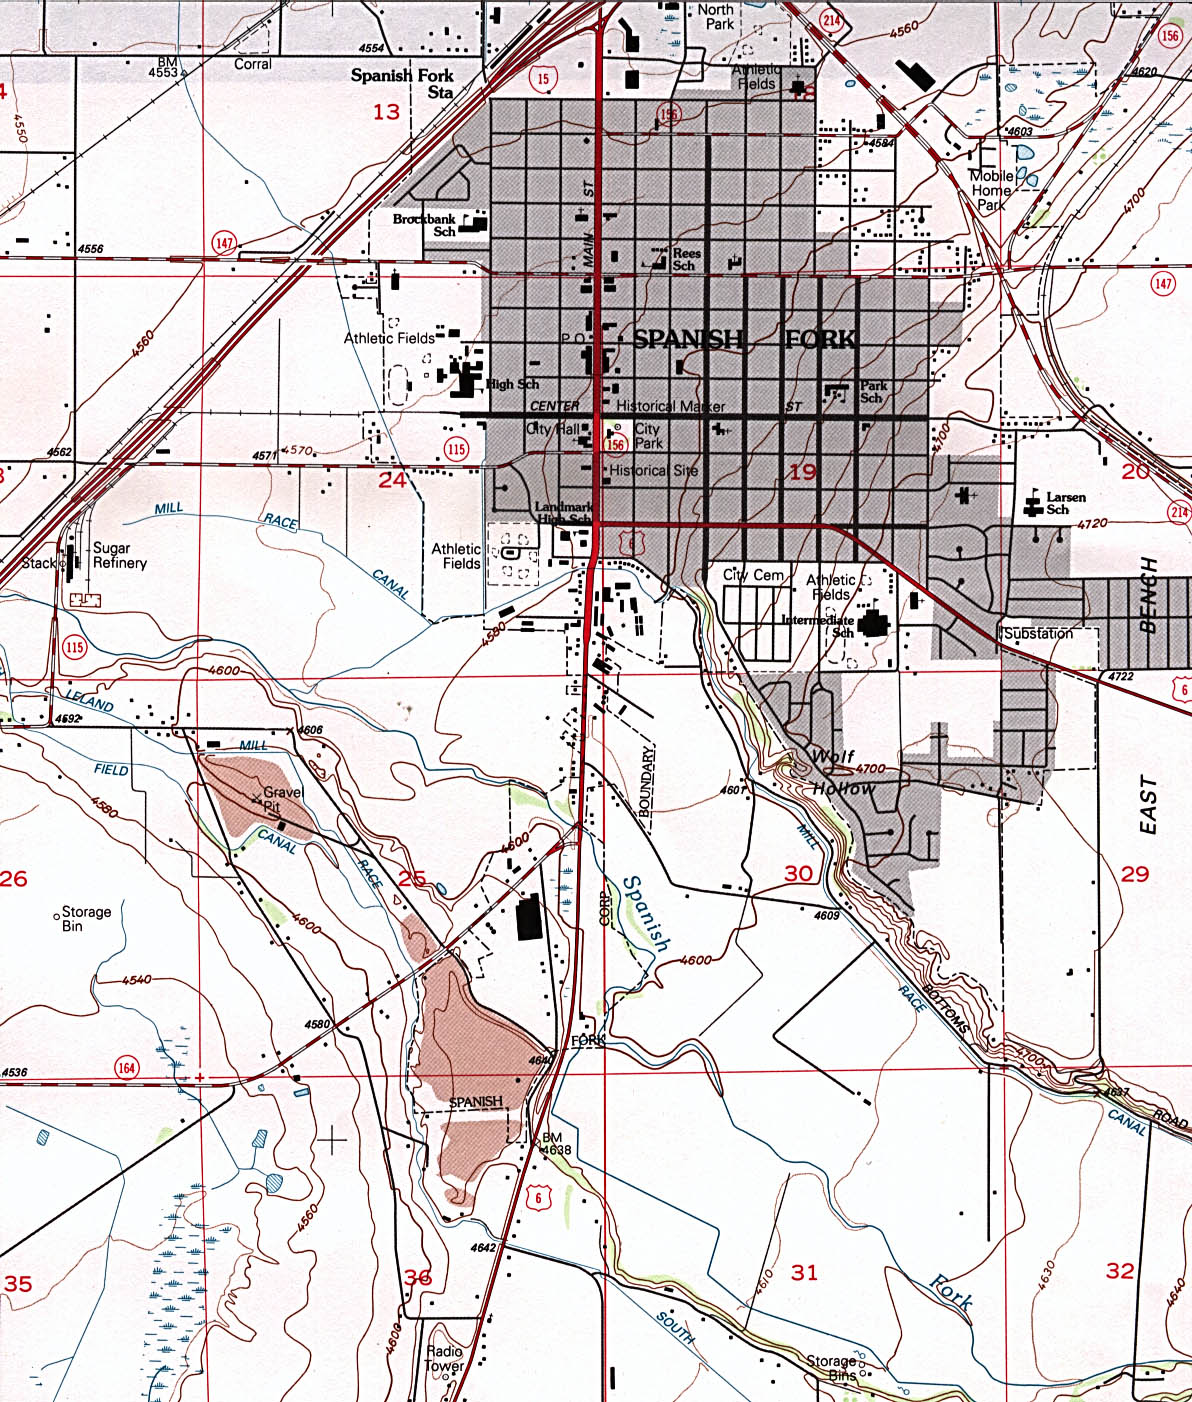 Maps of Spanish Fork Topographic City Map, Utah, United ...